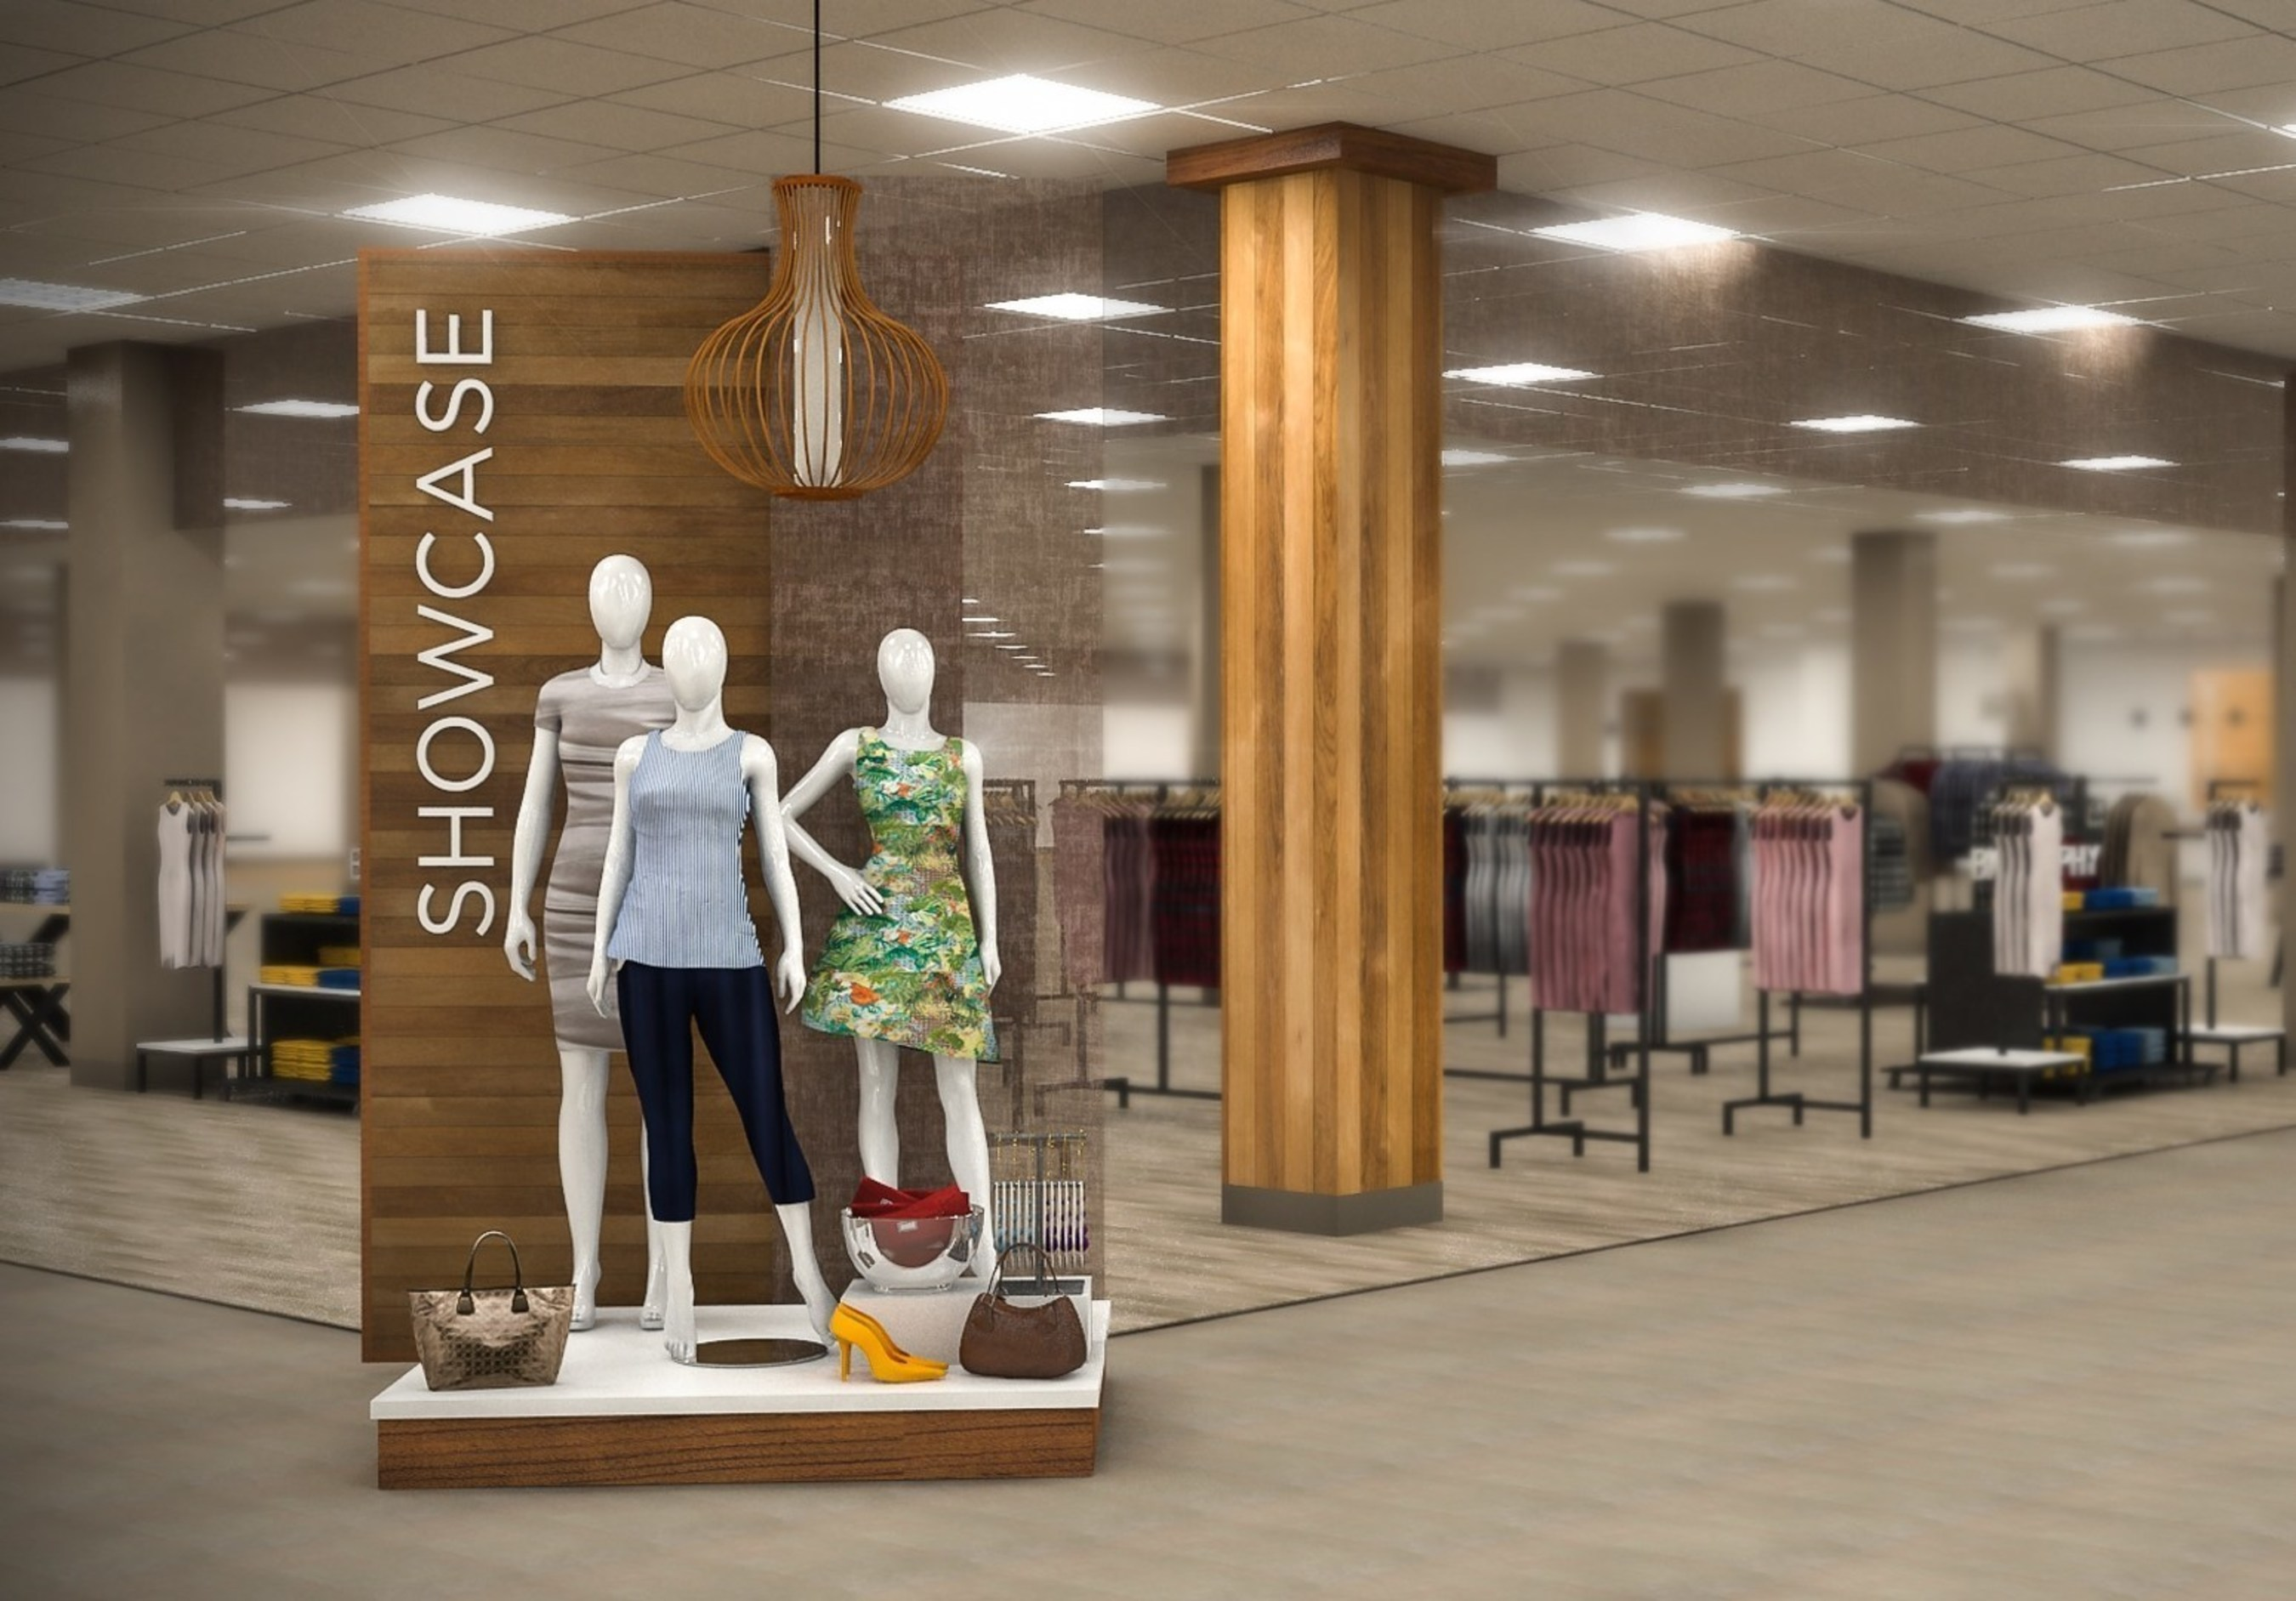 """Sears is elevating its apparel offerings with the planned launch of """"Showcase at Sears,"""" a unique shop-in-shop experience that gives members and customers an exclusive opportunity to shop more than 10 of Europe and Latin America's hottest international apparel brands - most available for the first time in the United States. This rendering depicts the inviting shopping environment inspired by understated elegance, using natural textures that will entice members and customers to explore the Showcase."""